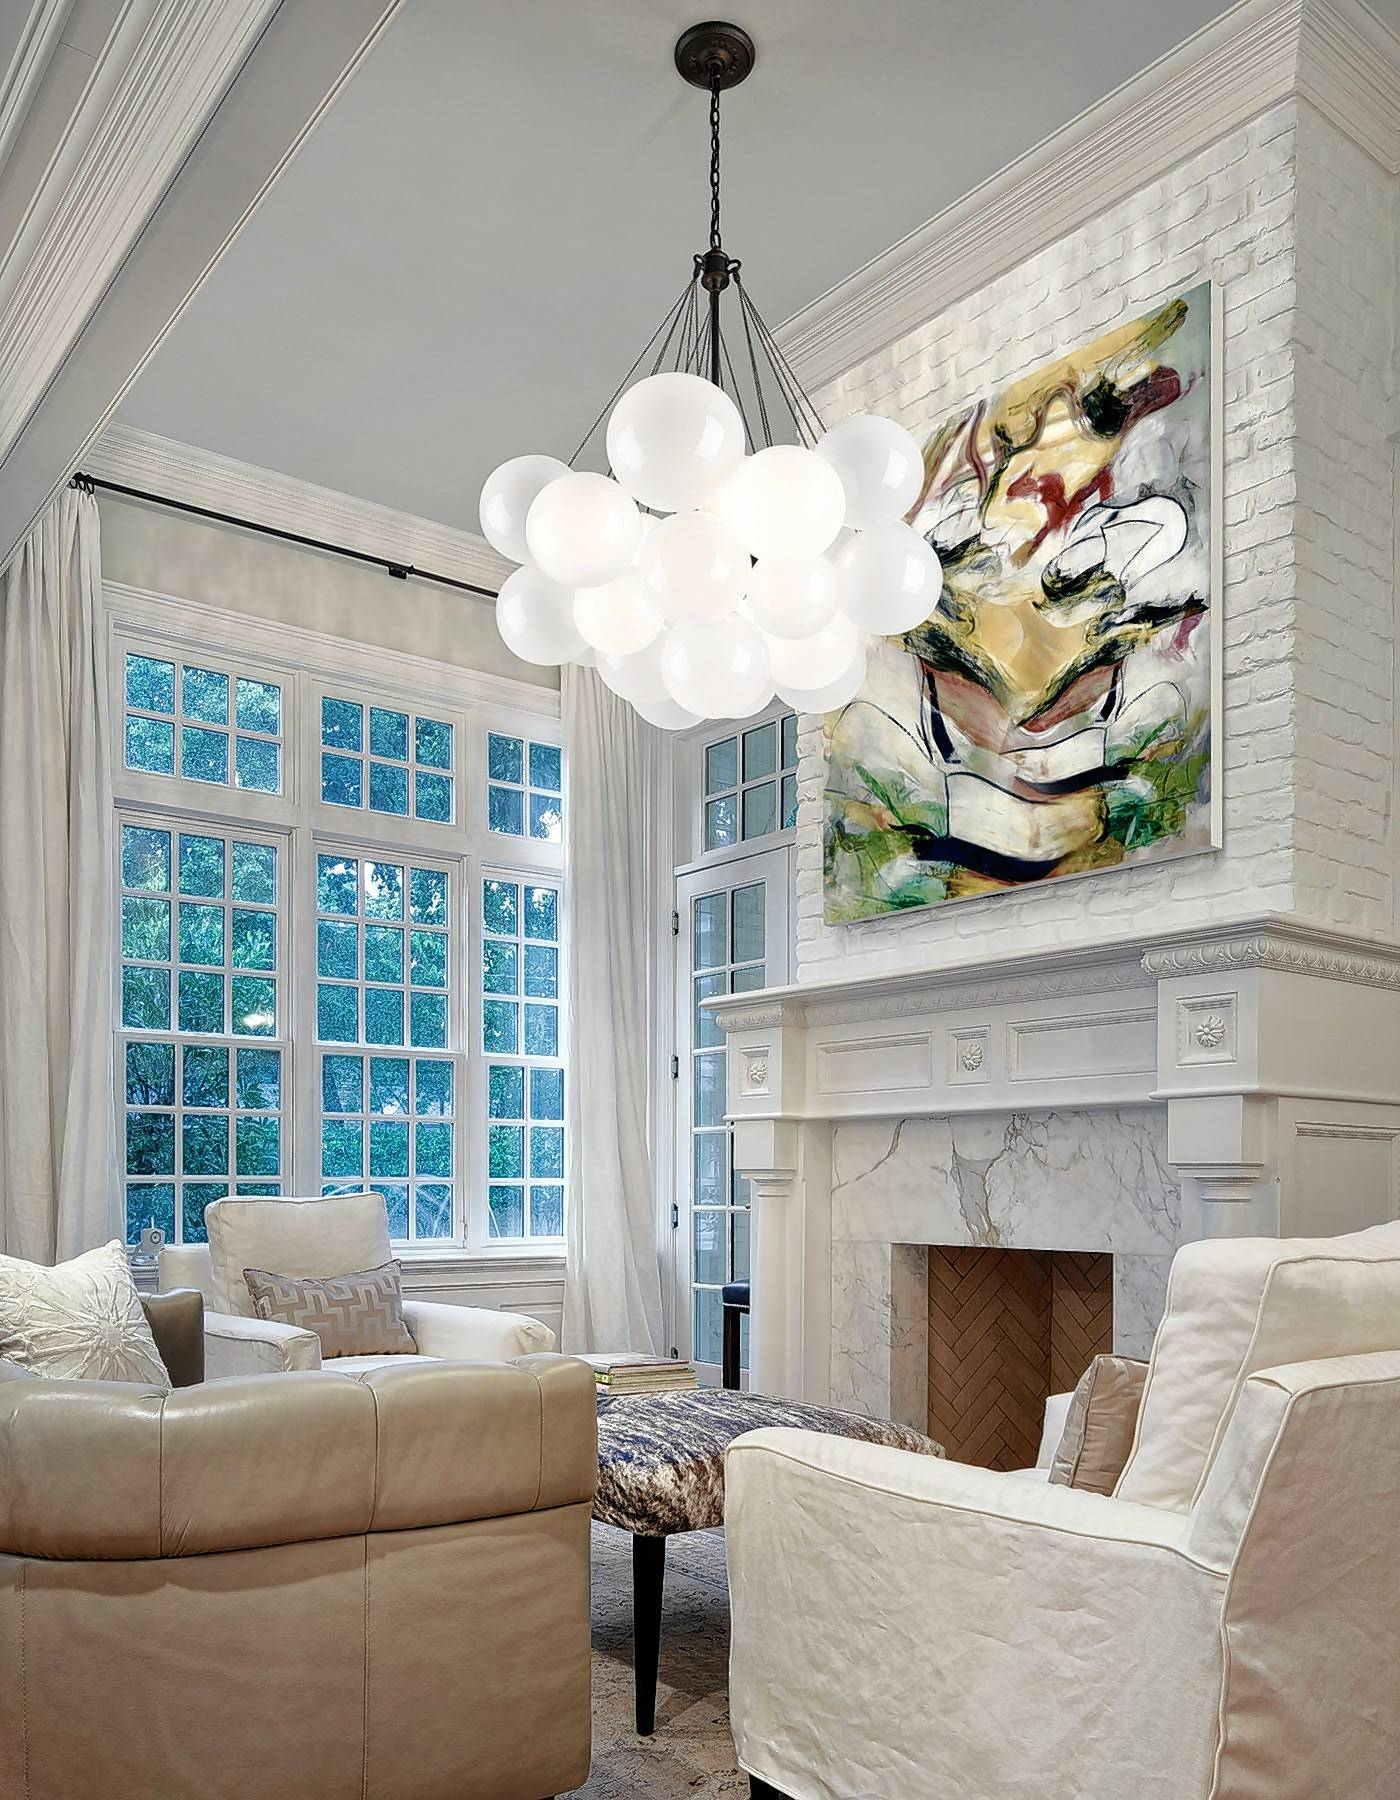 Notice the large art over the fireplace and how it forces the eye up toward the thick crown molding above the fireplace.